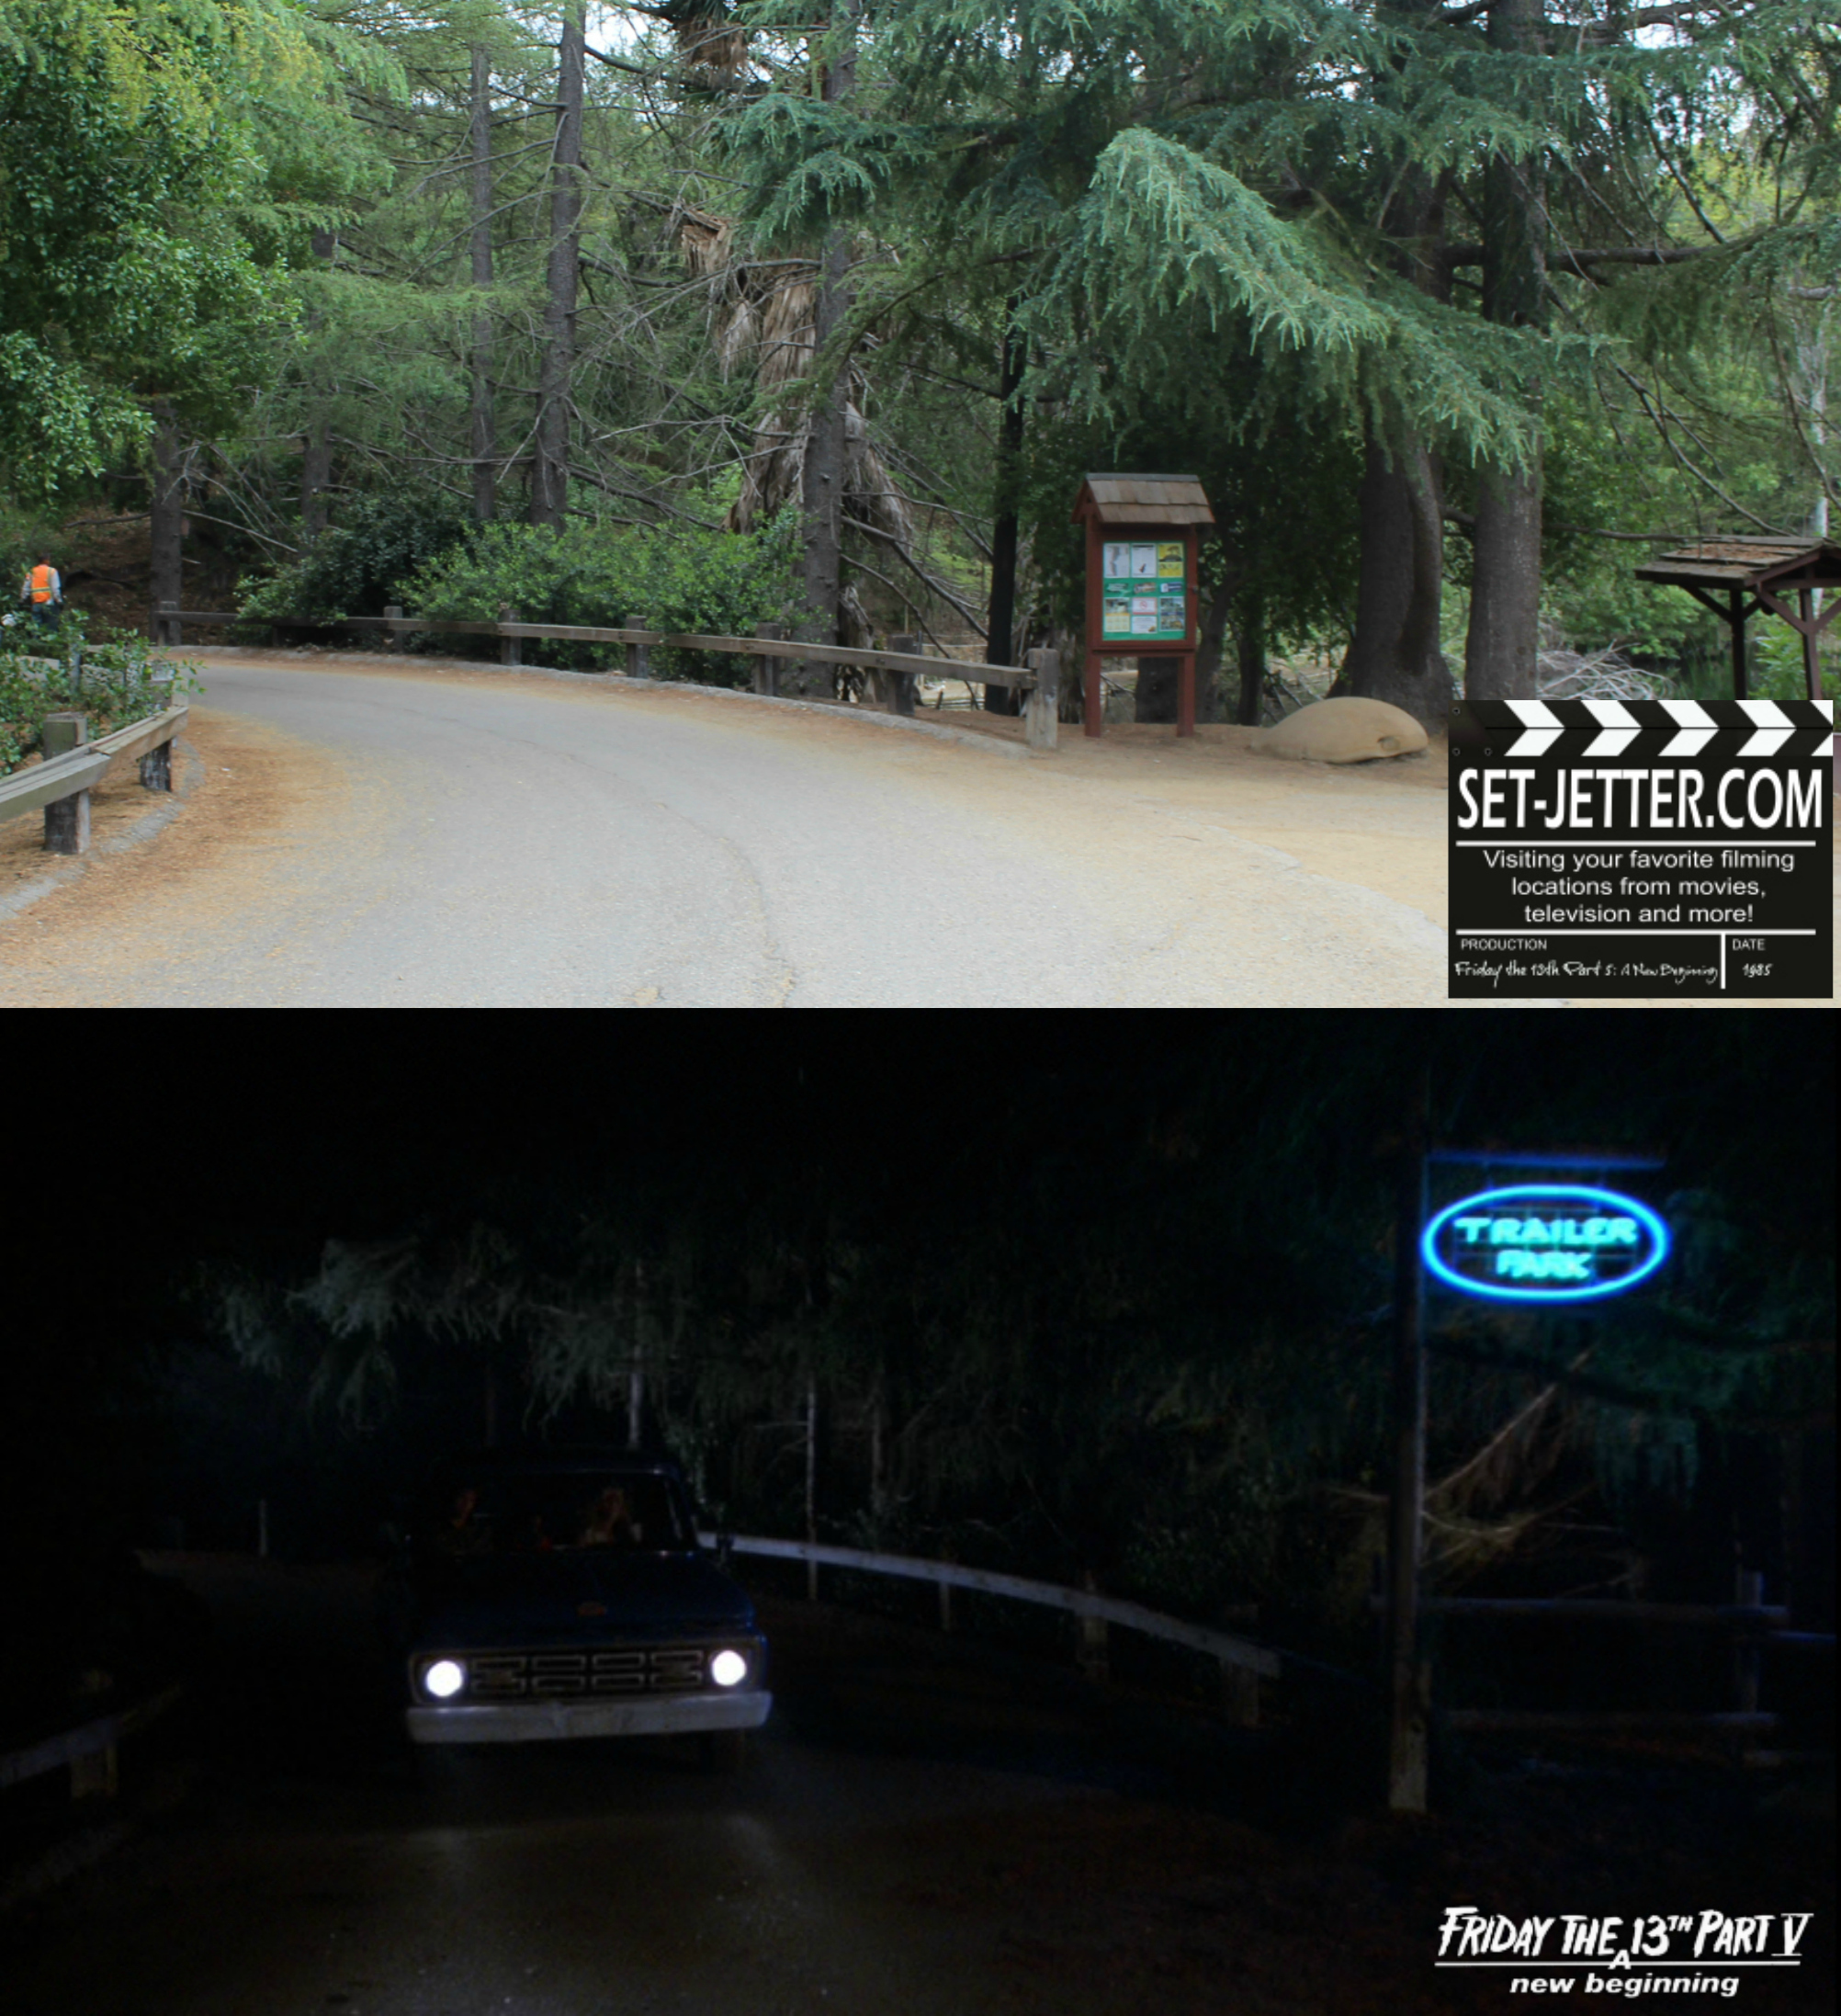 Friday the 13th Part V comparison 32.jpg